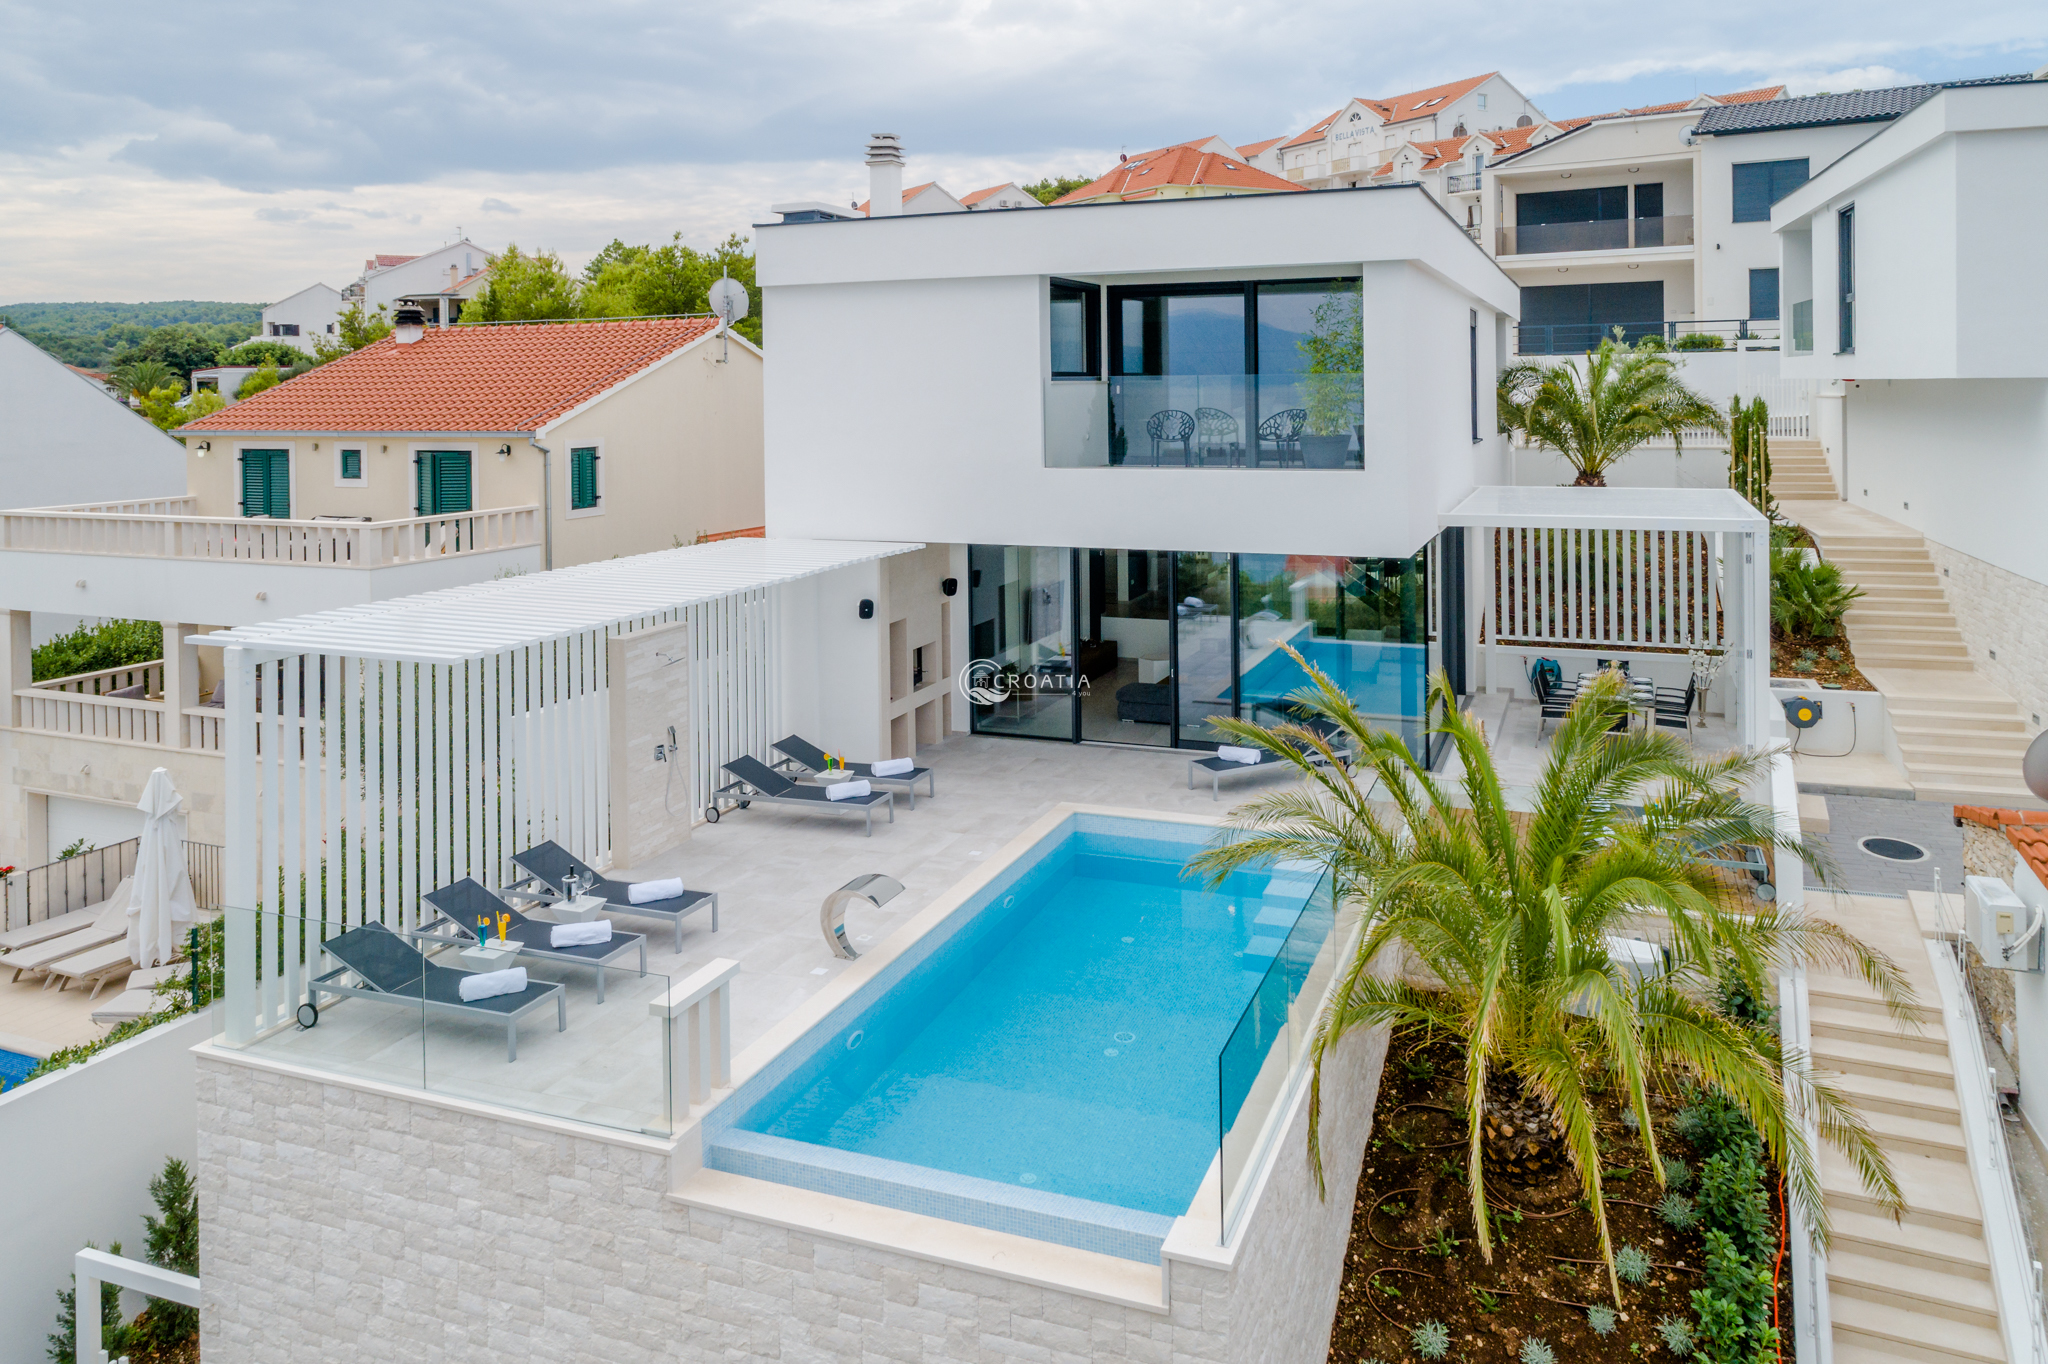 Newly built luxury villa P in Sutivan on island Brač